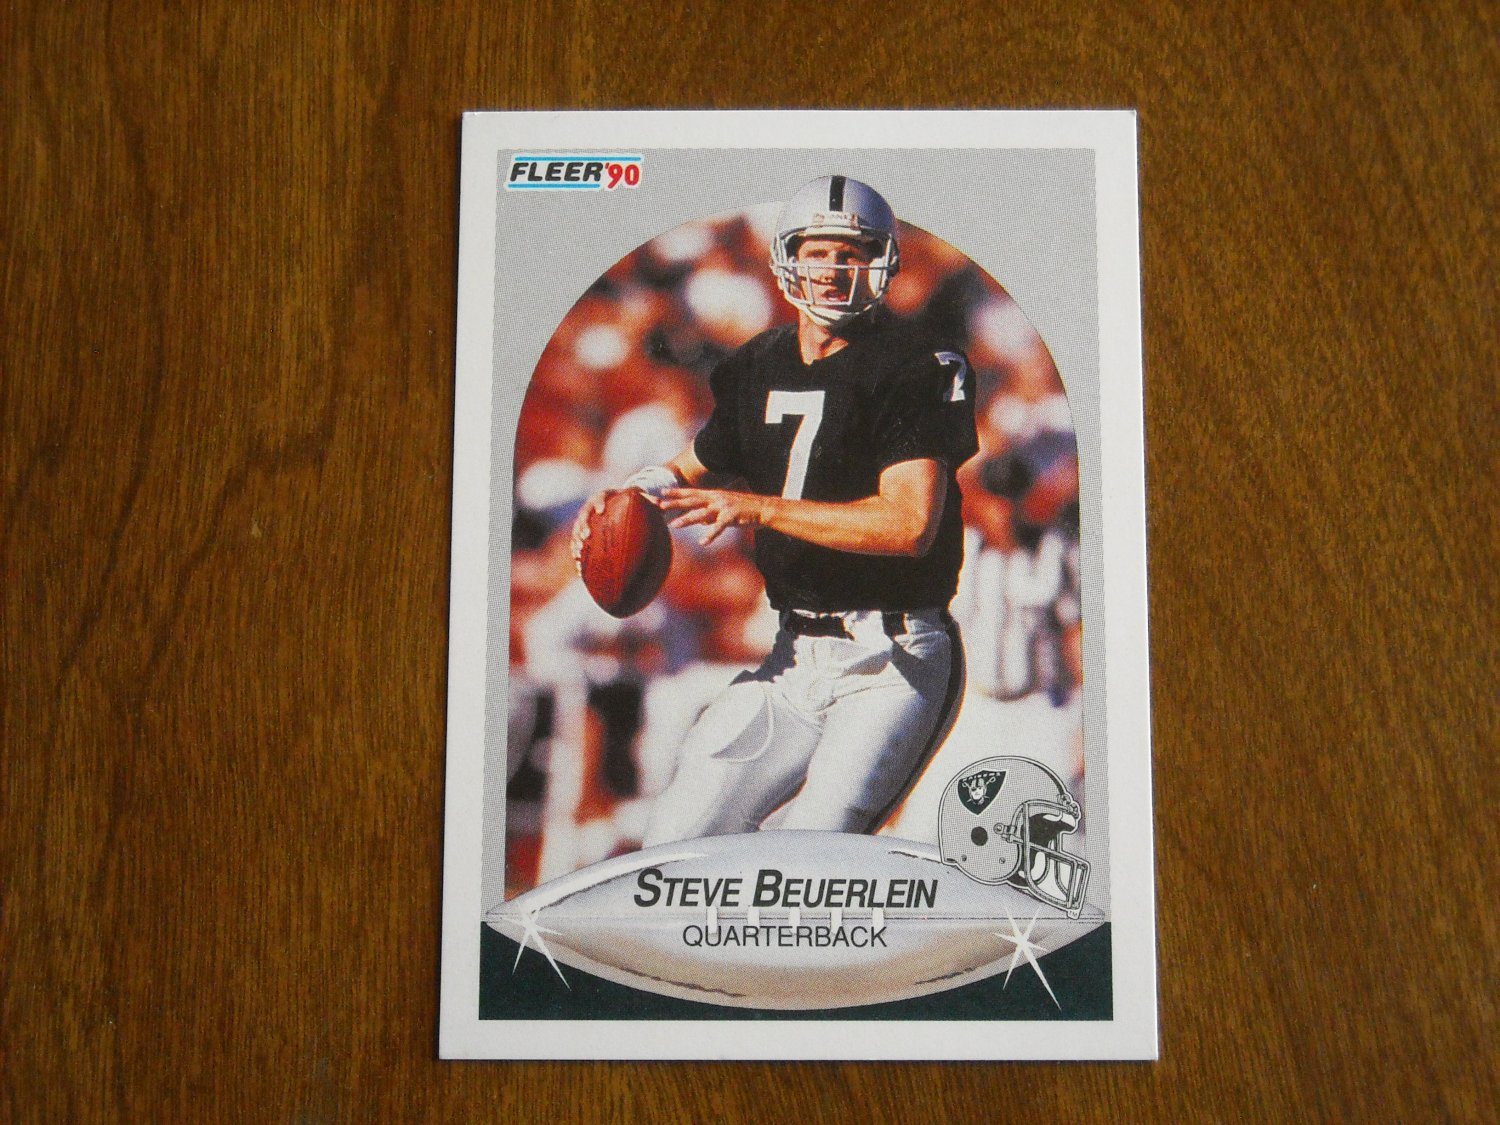 Steve Beuerlein Los Angeles Raiders Quarterback Card No. 251 - 1990 Fleer Football Card